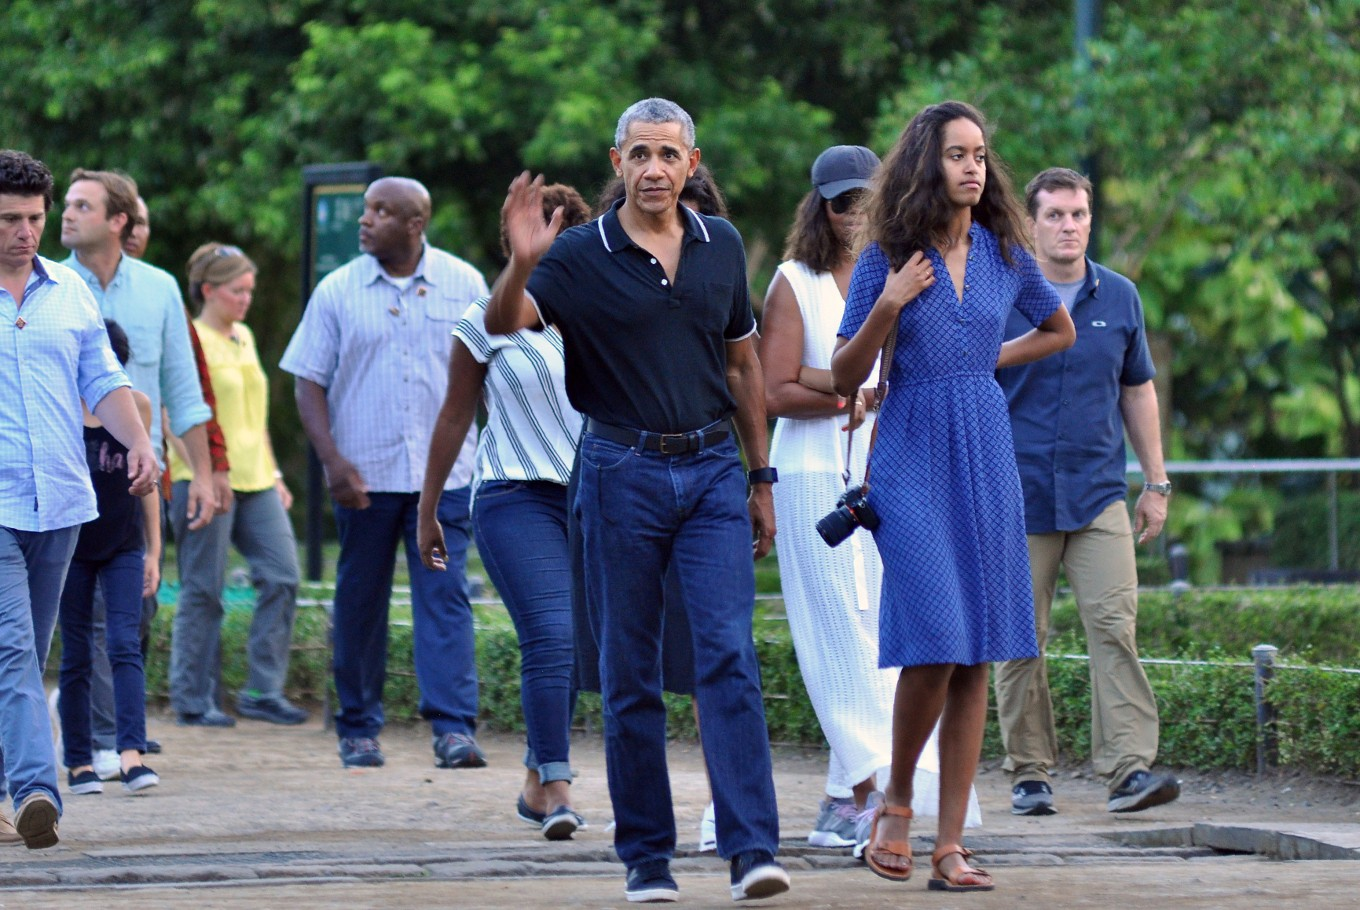 Heritage sites in Indonesia reflect spirit of tolerance: Obama